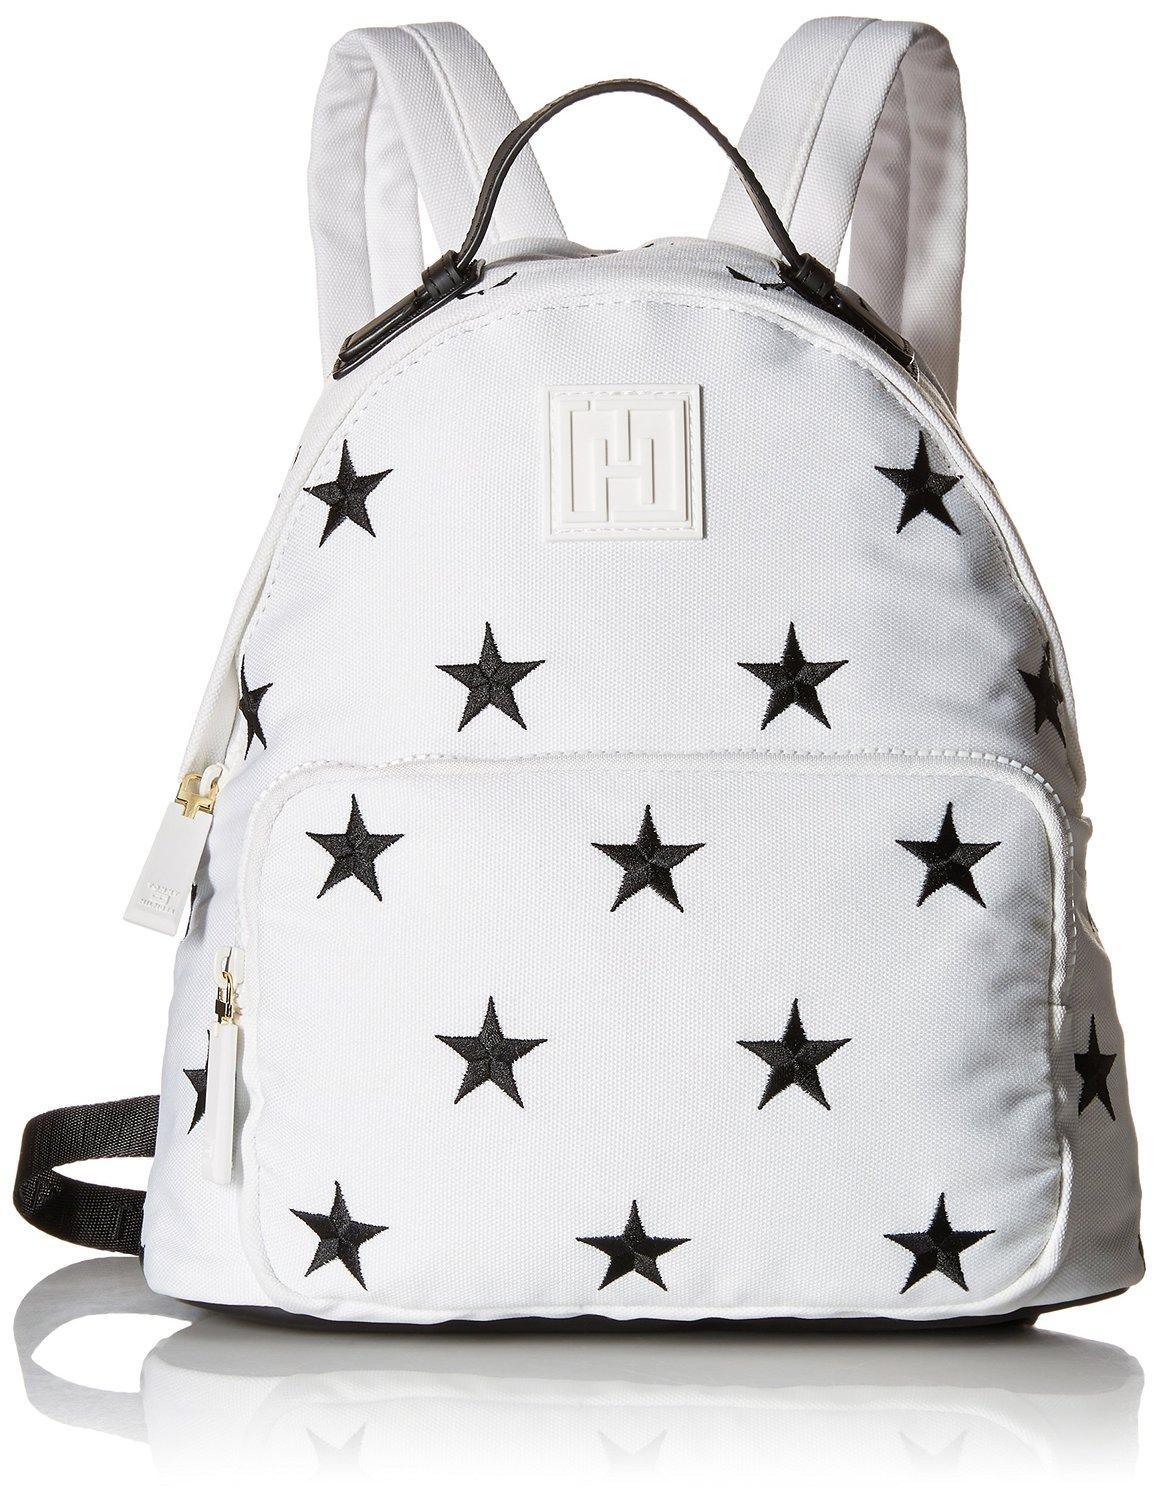 Tommy Hilfiger TH Sport Star Mini Drawstring Backpack